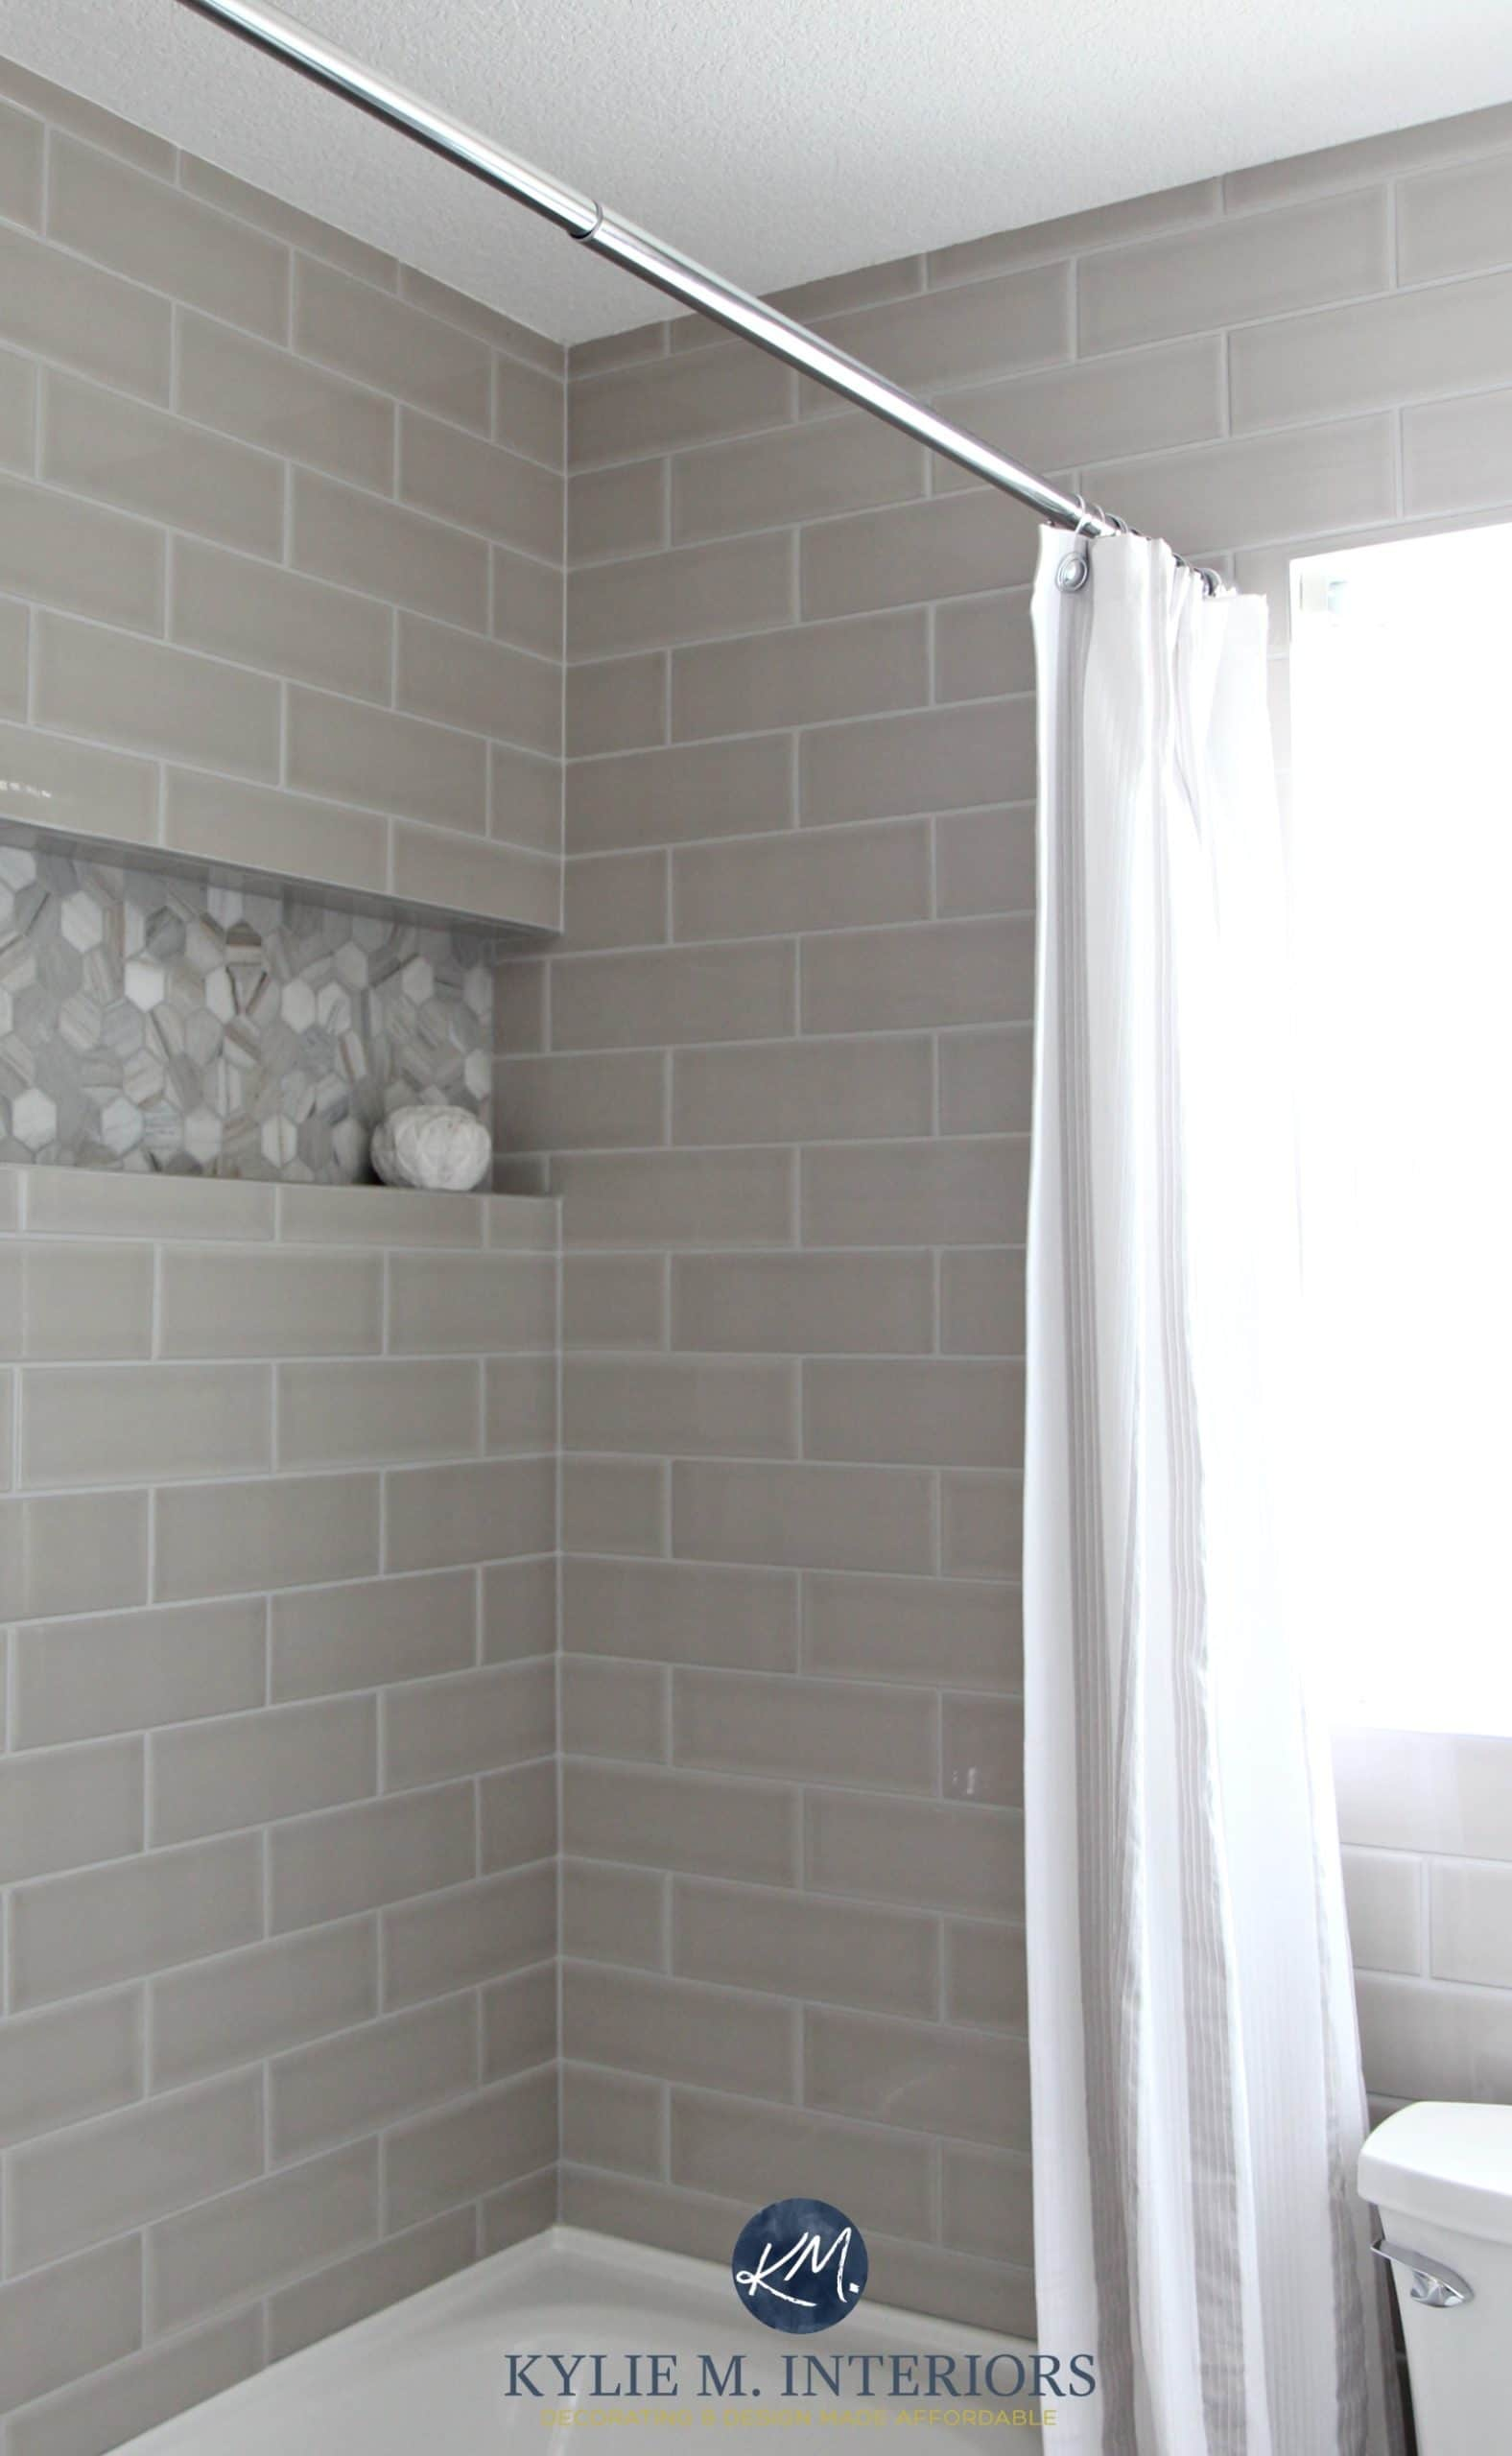 Gray subway tile shower surround with niche or alcove in hexagon ...